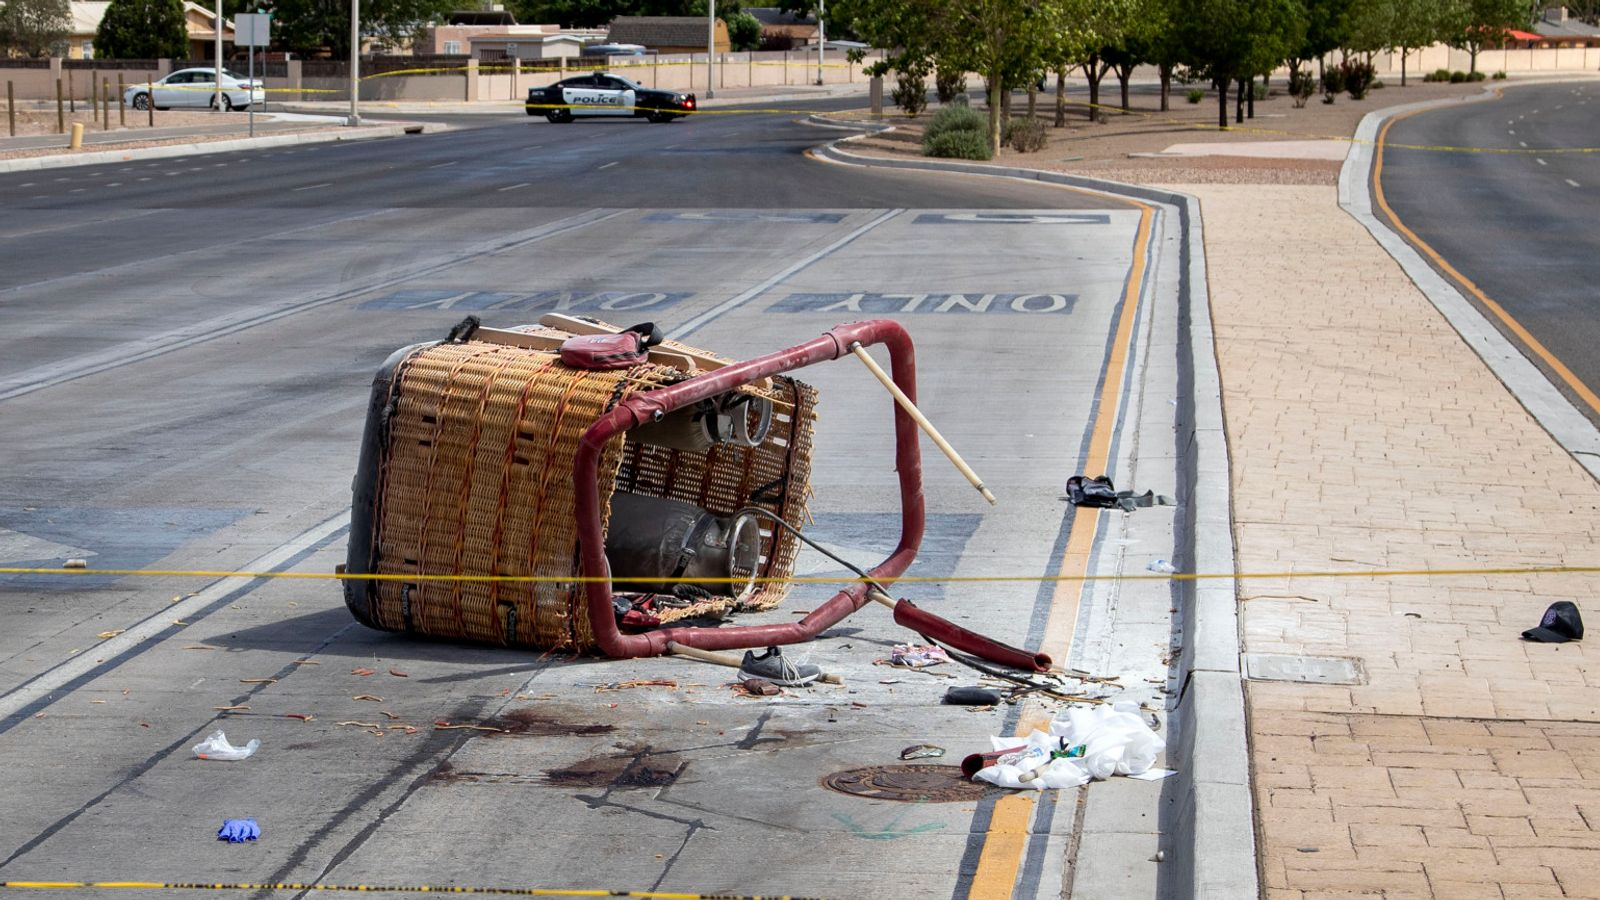 Five Dead After Hot Air Balloon 'Blown Into Power Lines' In Albuquerque, New Mexico